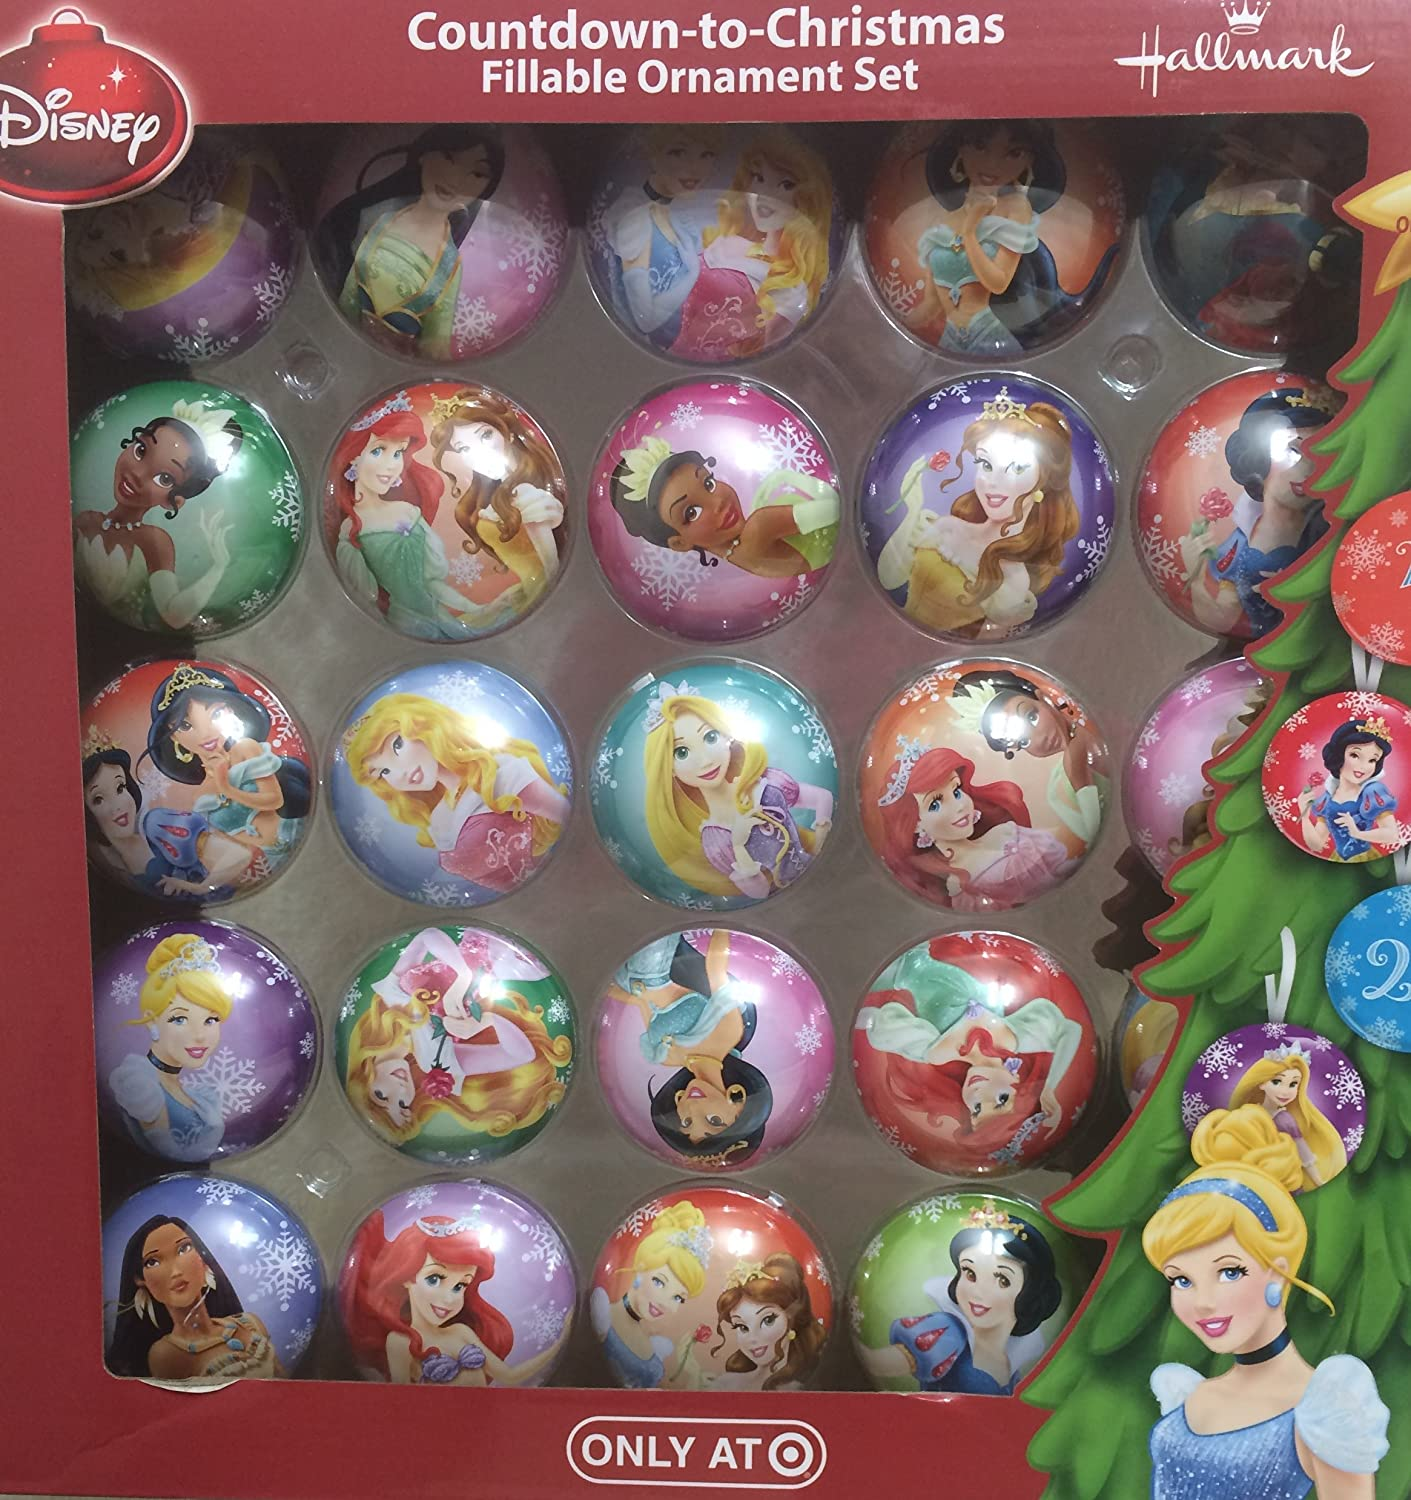 hallmark disney countdown to christmas fillable ornament set princess home kitchen jpg 1411x1500 disney princess christmas